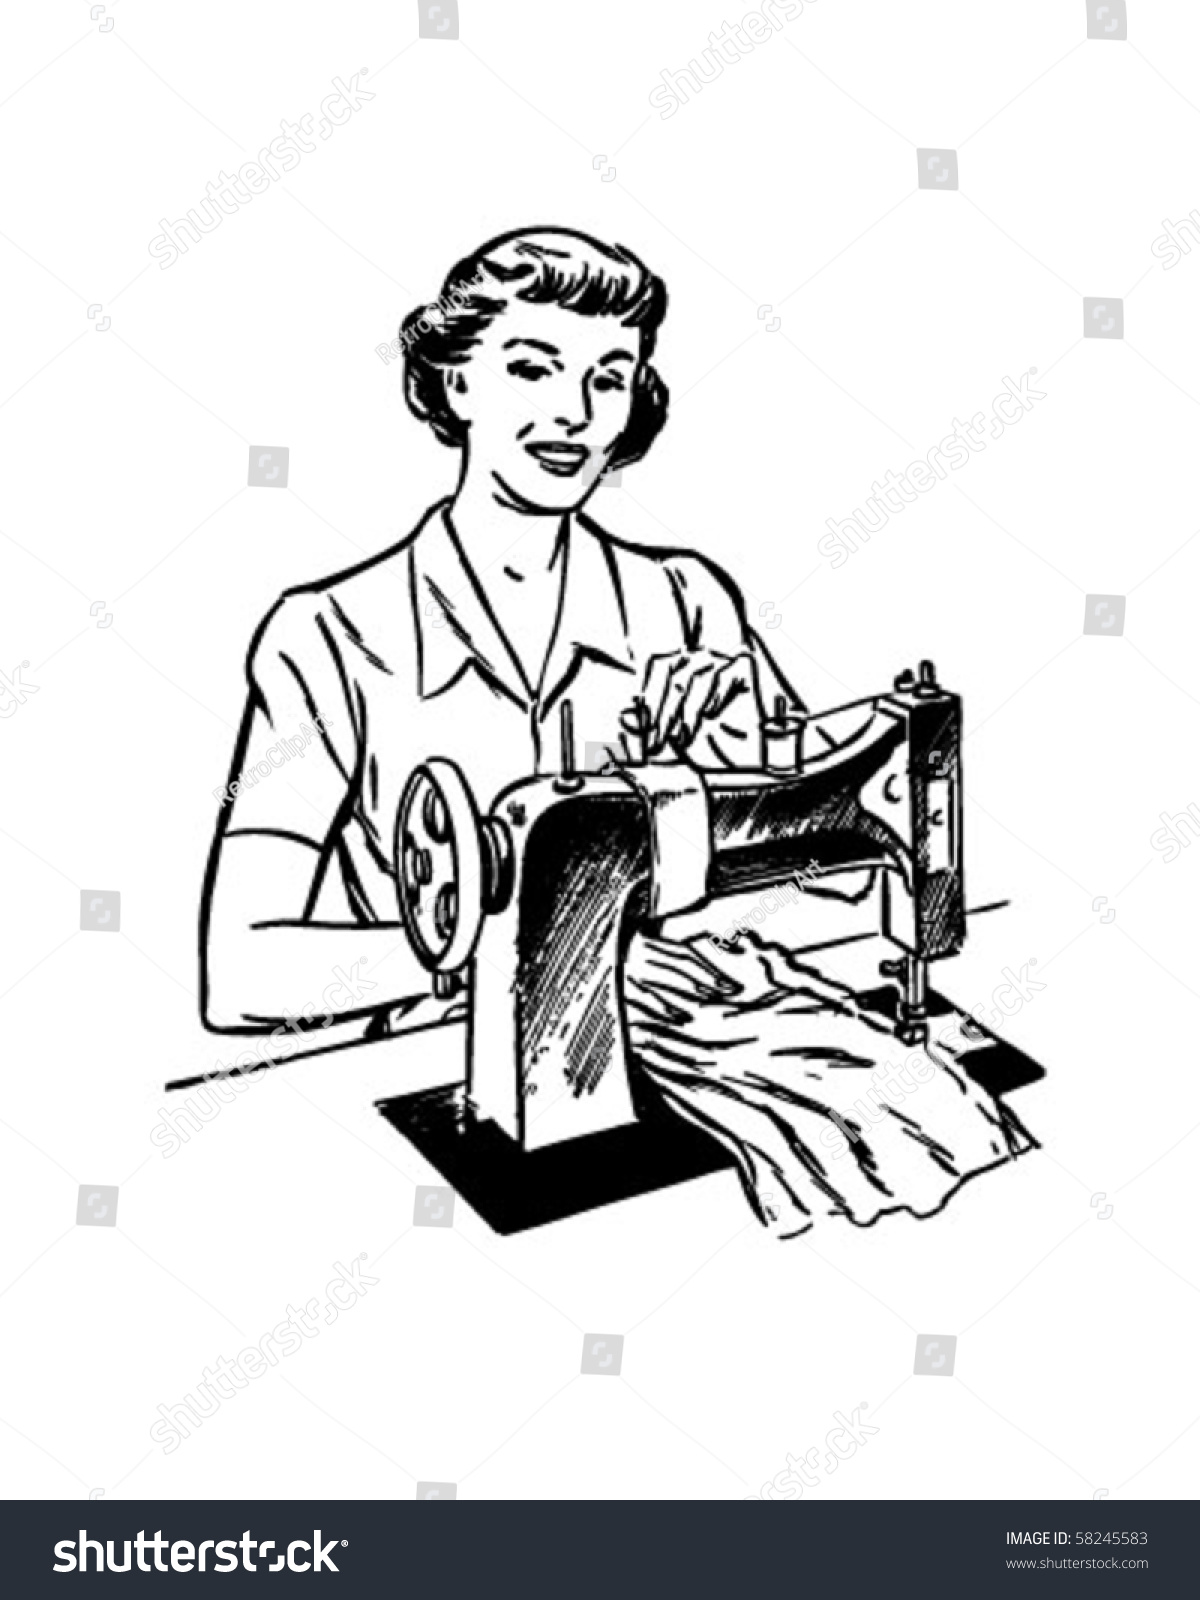 Lady Sewing Retro Clip Art Stock Vector 58245583 - Shutterstock